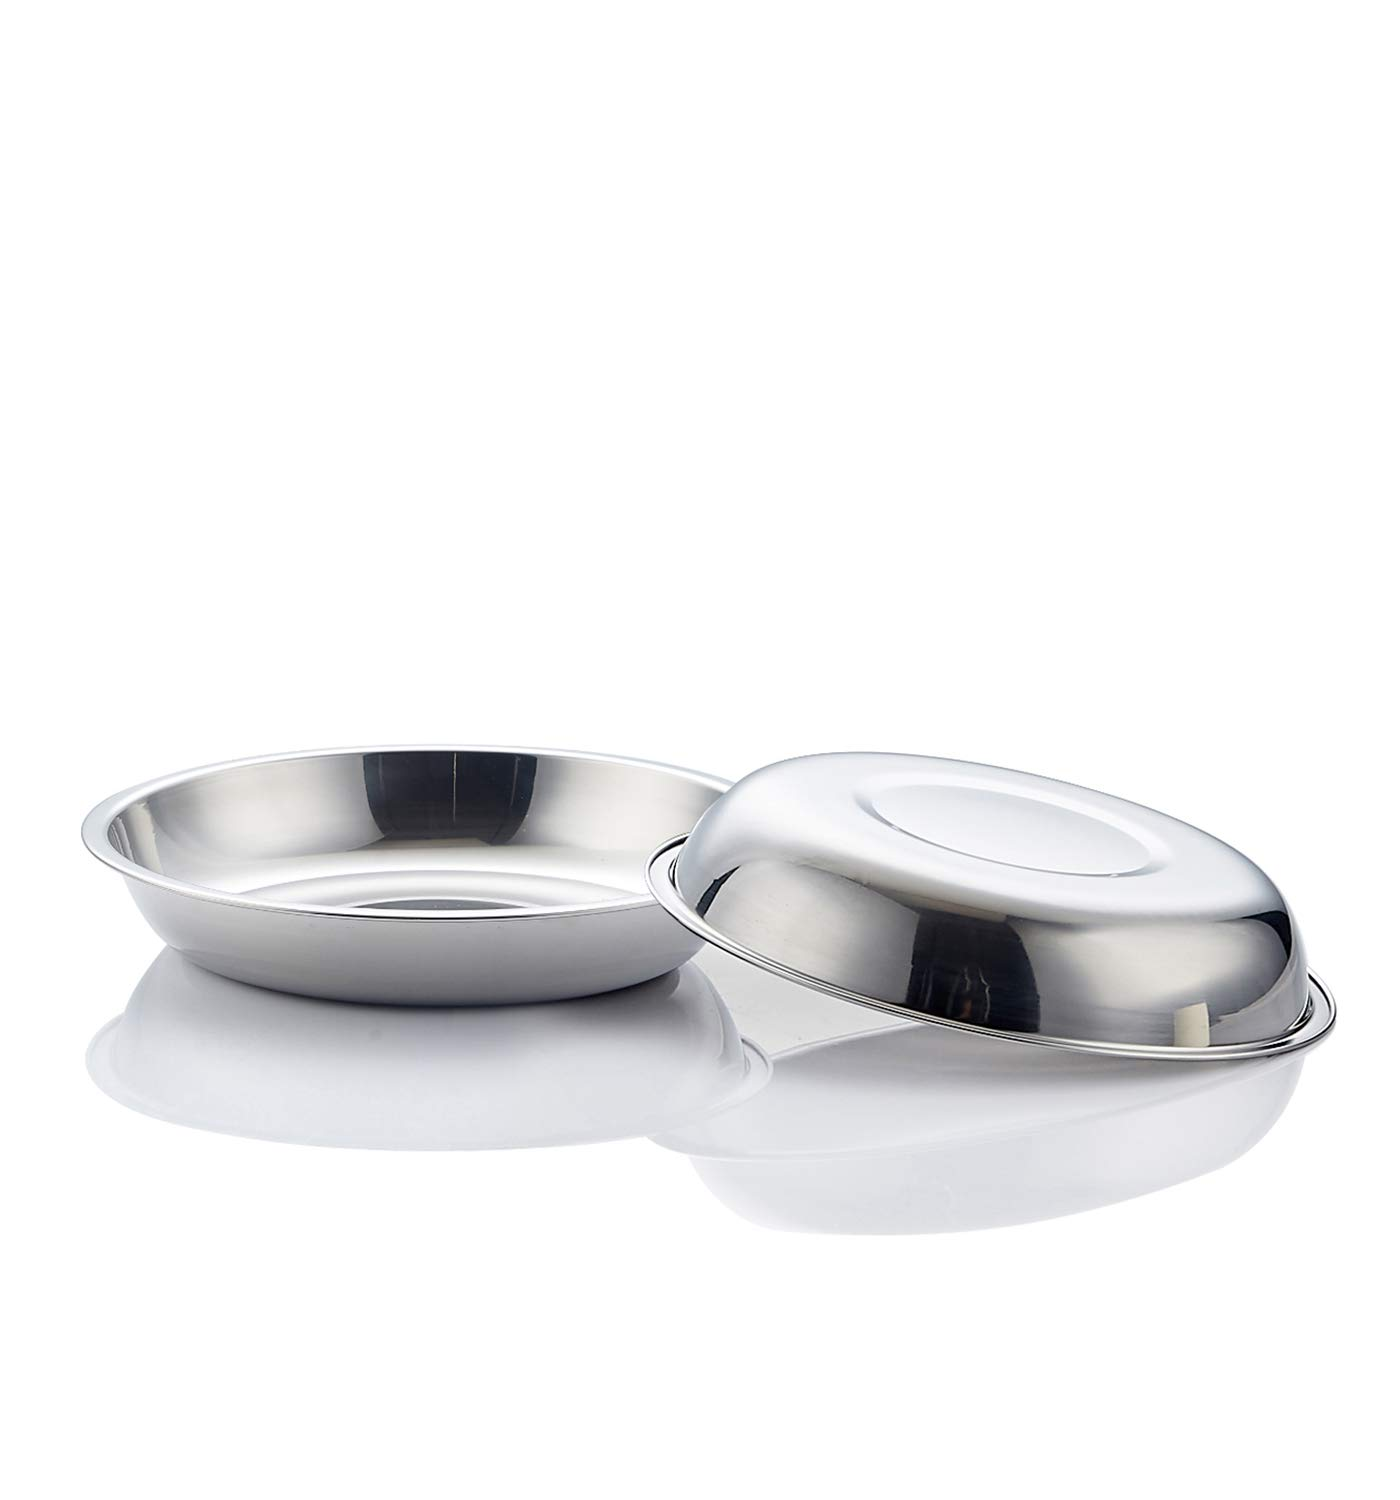 Global Wansheng 5-10 inches Optional Multiple pet Bowls, cat Food Bowl Used to Relieve Whisker Fatigue, Stainless Steel cat Food Tray, Dog Food Dish